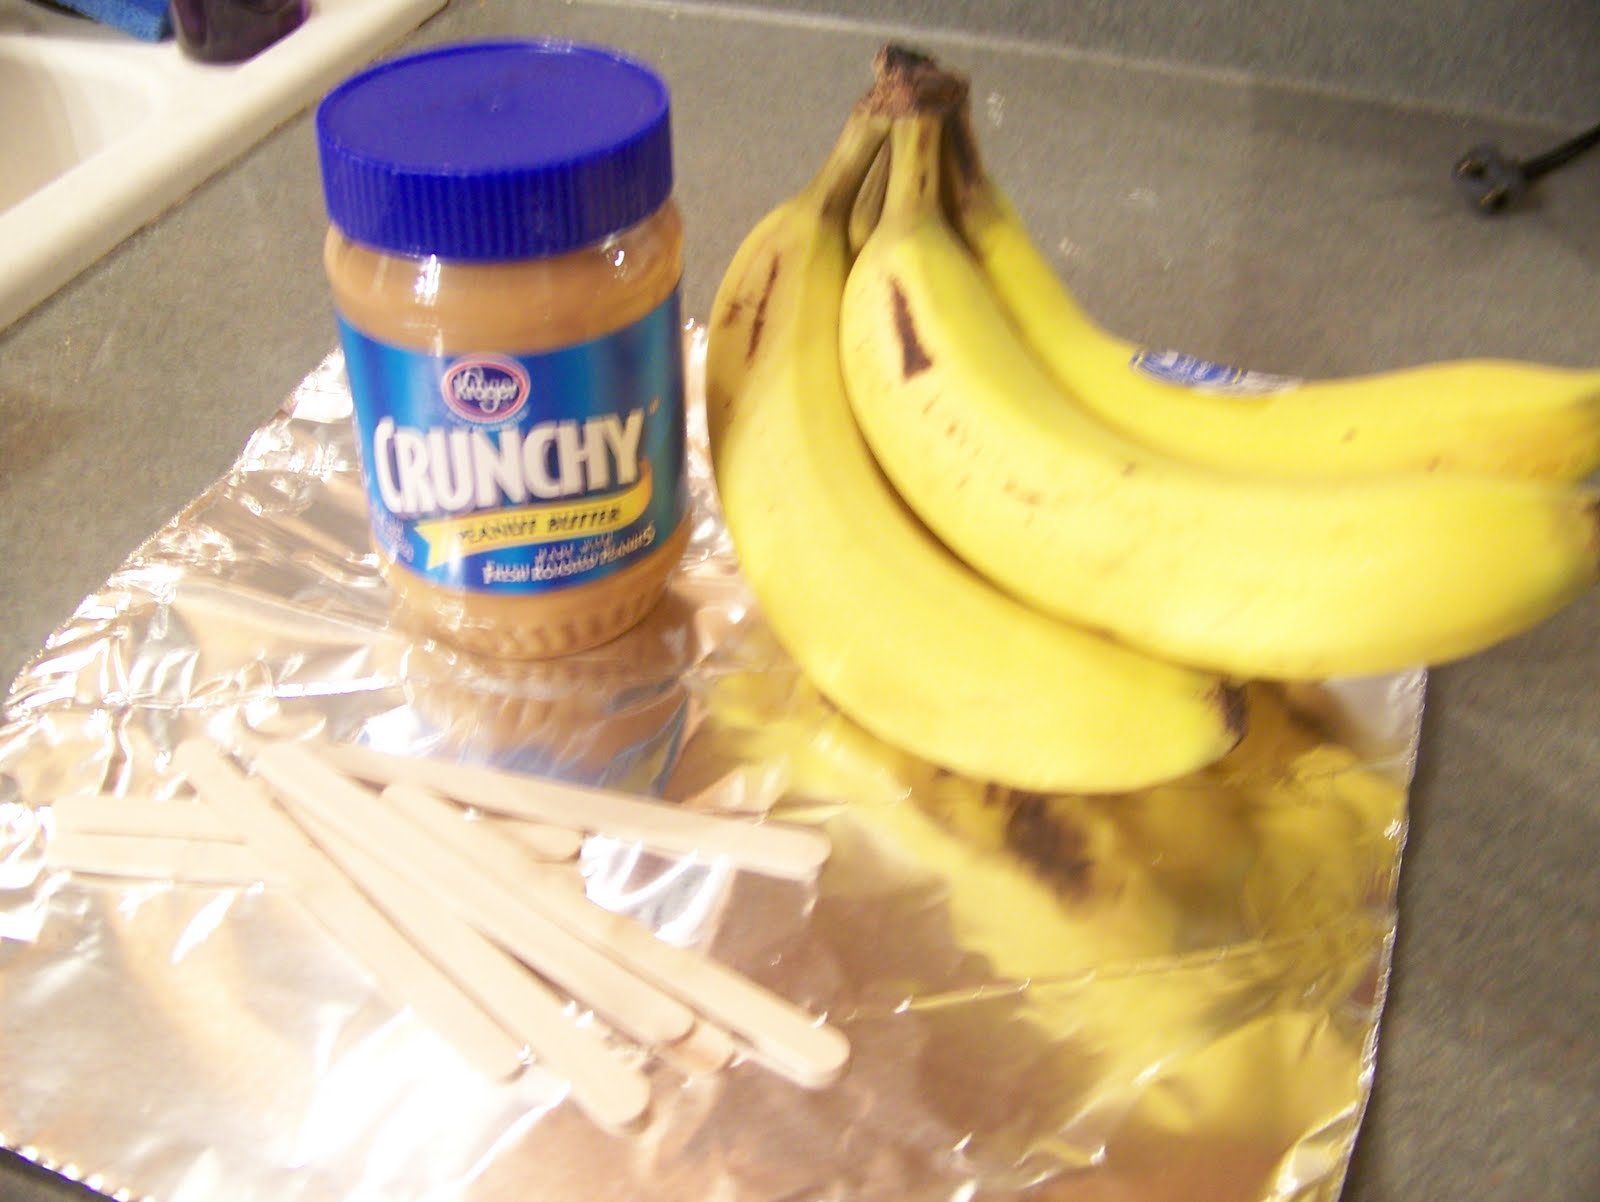 ... Mommies: Toddler Snack Idea: Frozen Peanut Butter Bannanas on a Stick